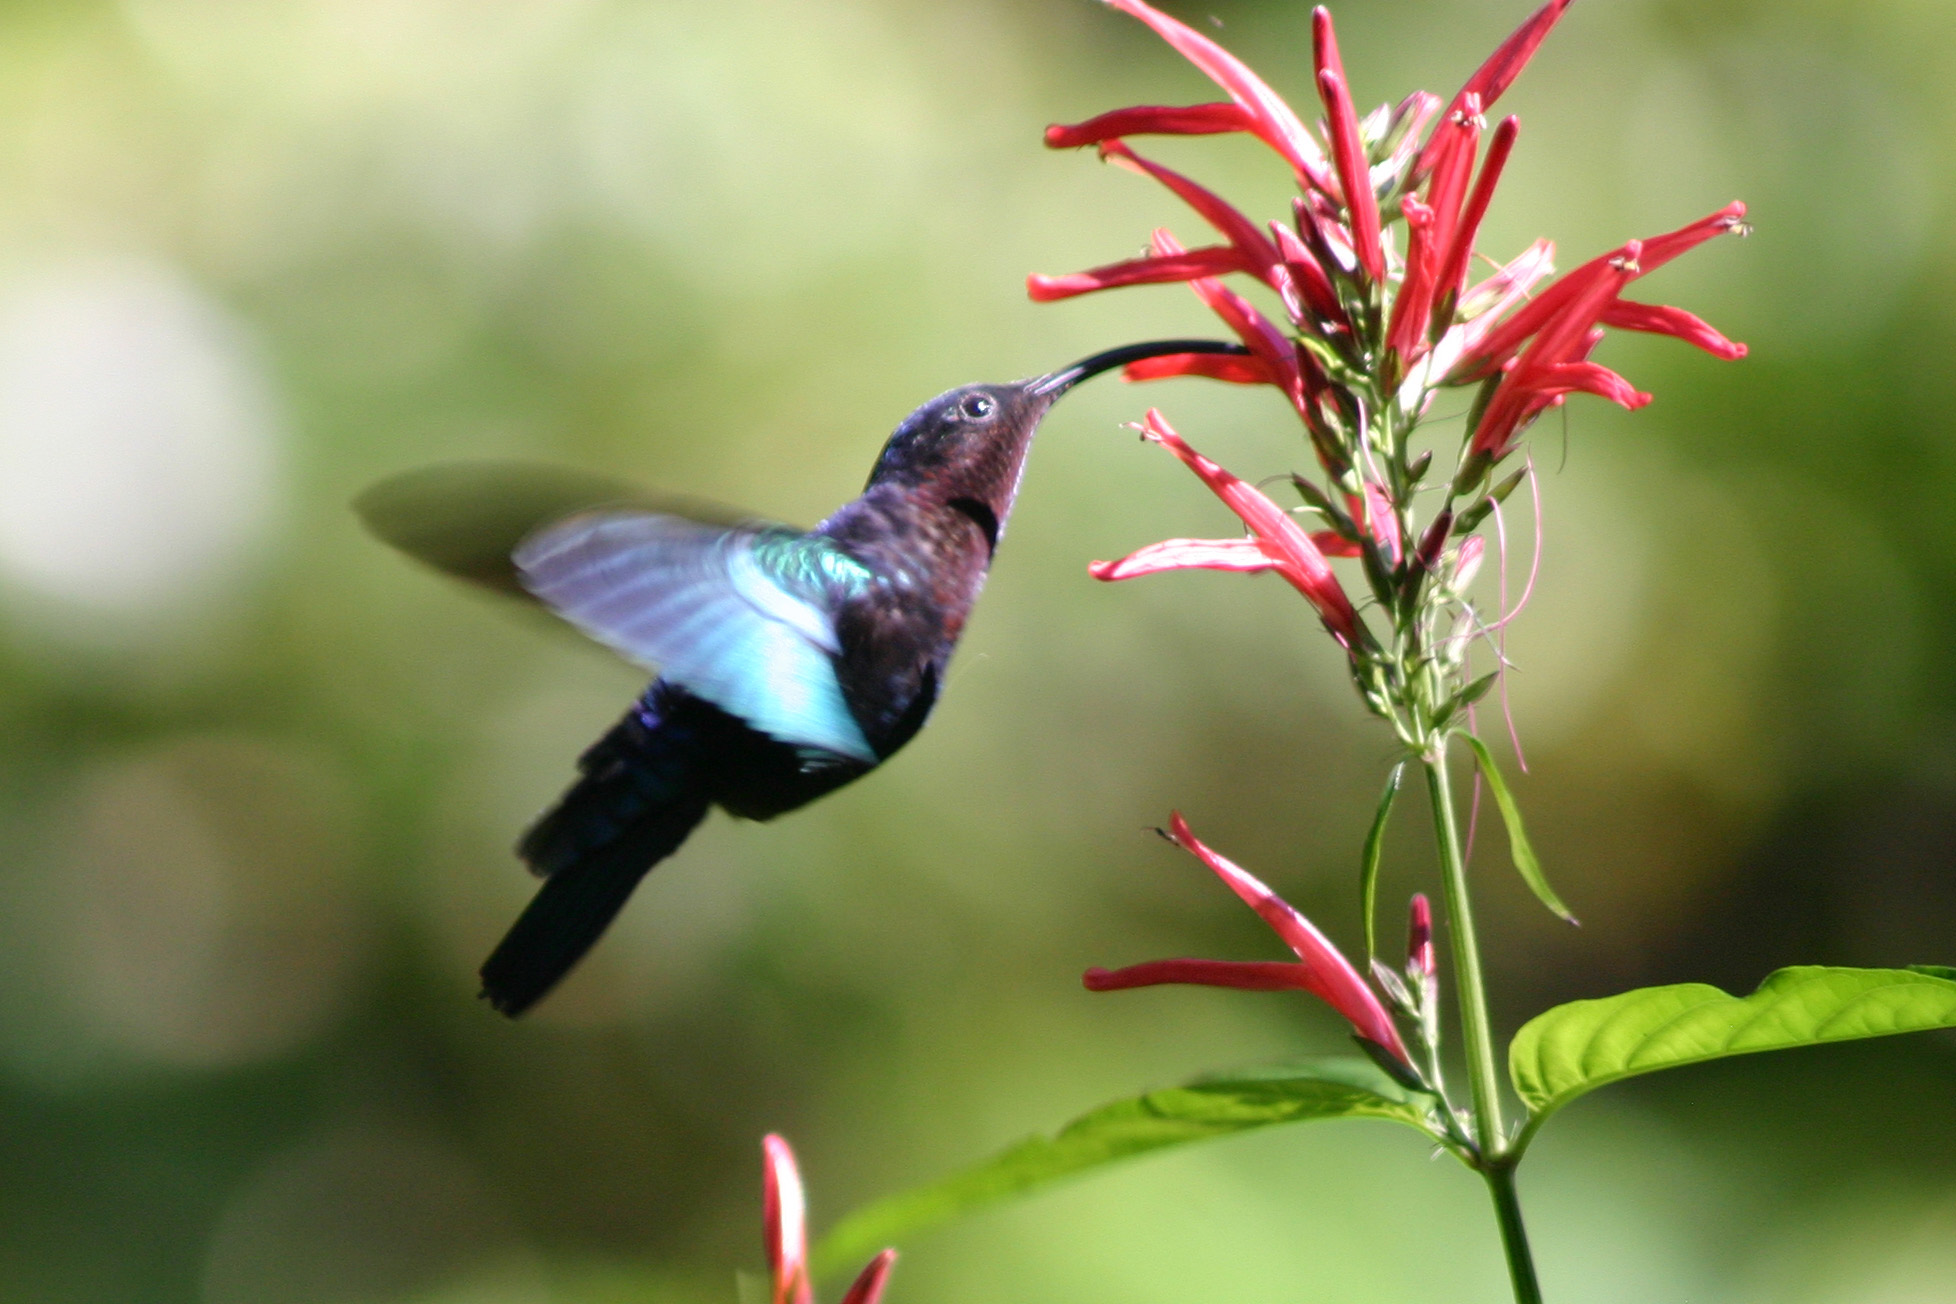 Hummingbird enjoying